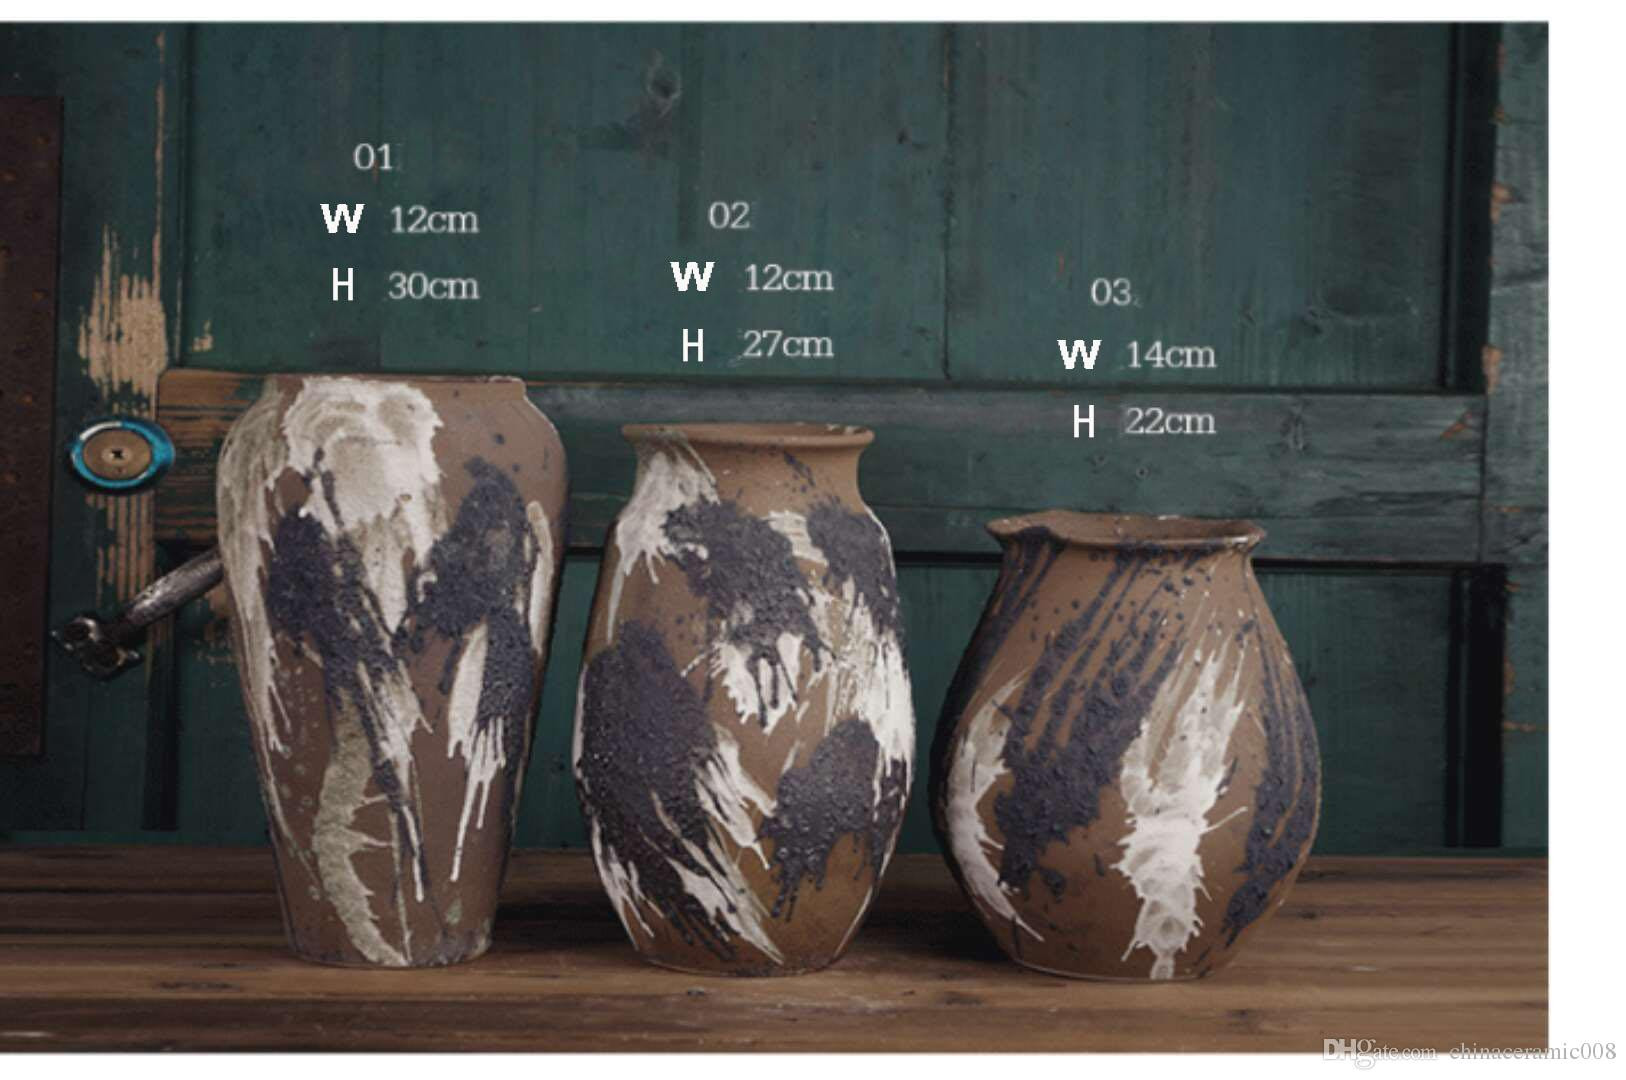 Retro Vases for Sale Of Creative Fashion Bubble Glaze Vase Flower Plug European Retro within Creative Fashion Bubble Glaze Vase Flower Plug European Retro ornaments Crafts Retro Online with 103 13 Piece On Chinaceramic008s Store Dhgate Com